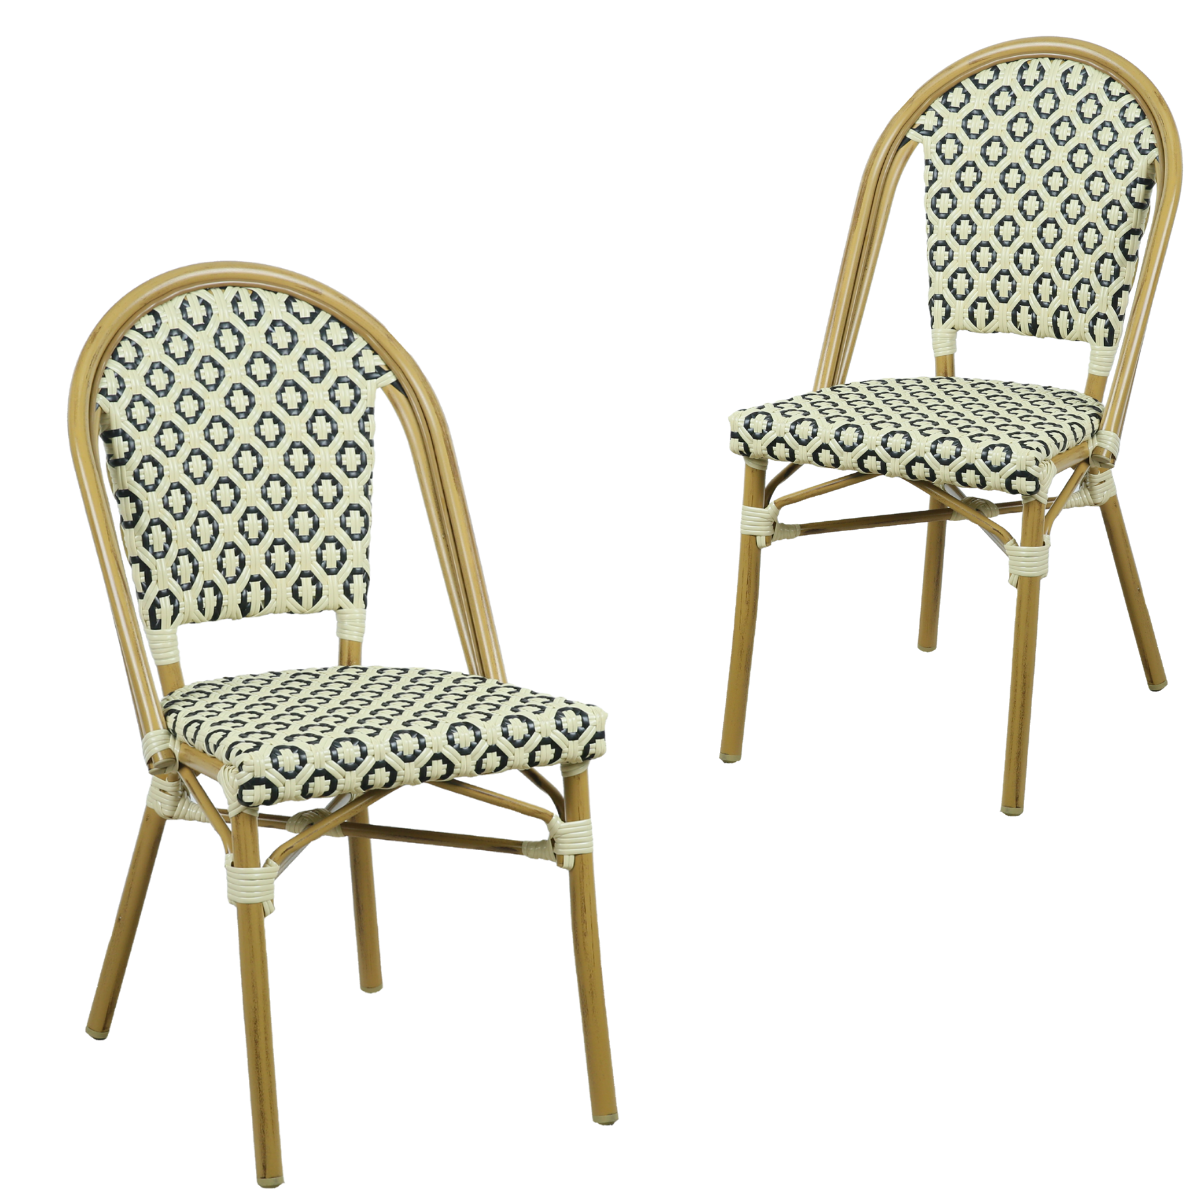 Lana Brown Outdoor Dining Chair Set - Evopia